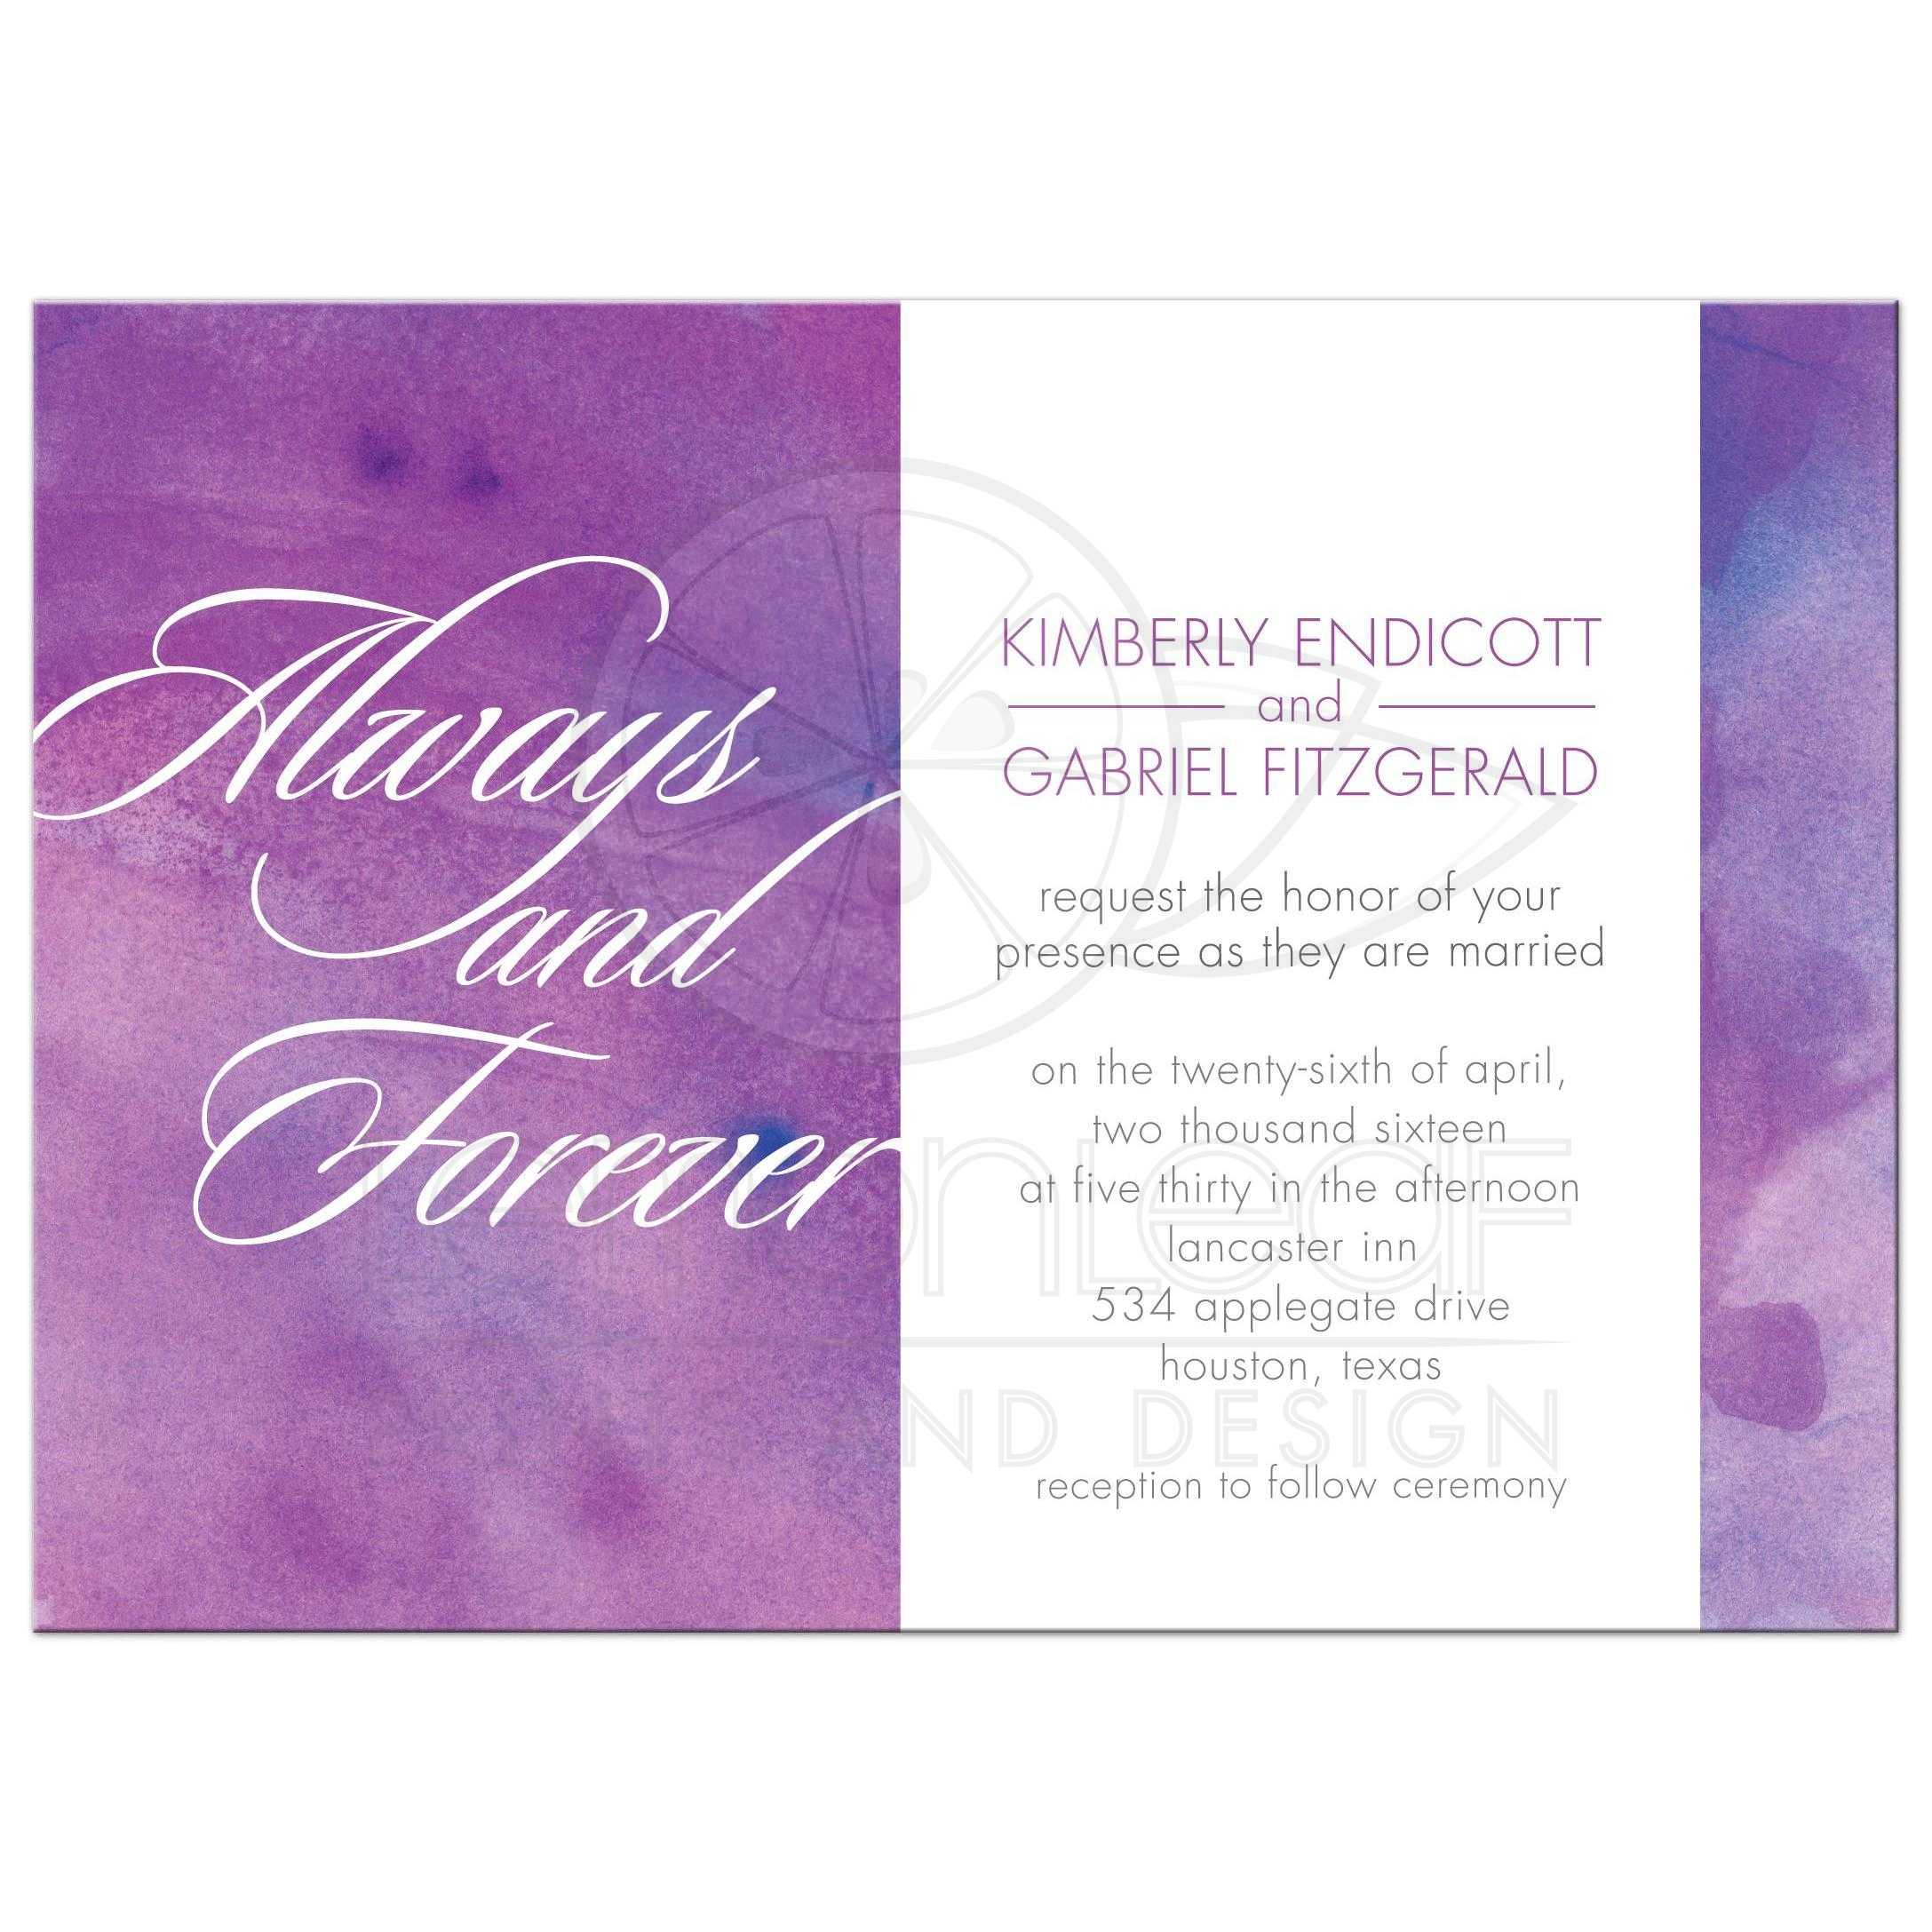 Wedding Invitation - Always and Forever Purple Watercolor Wash